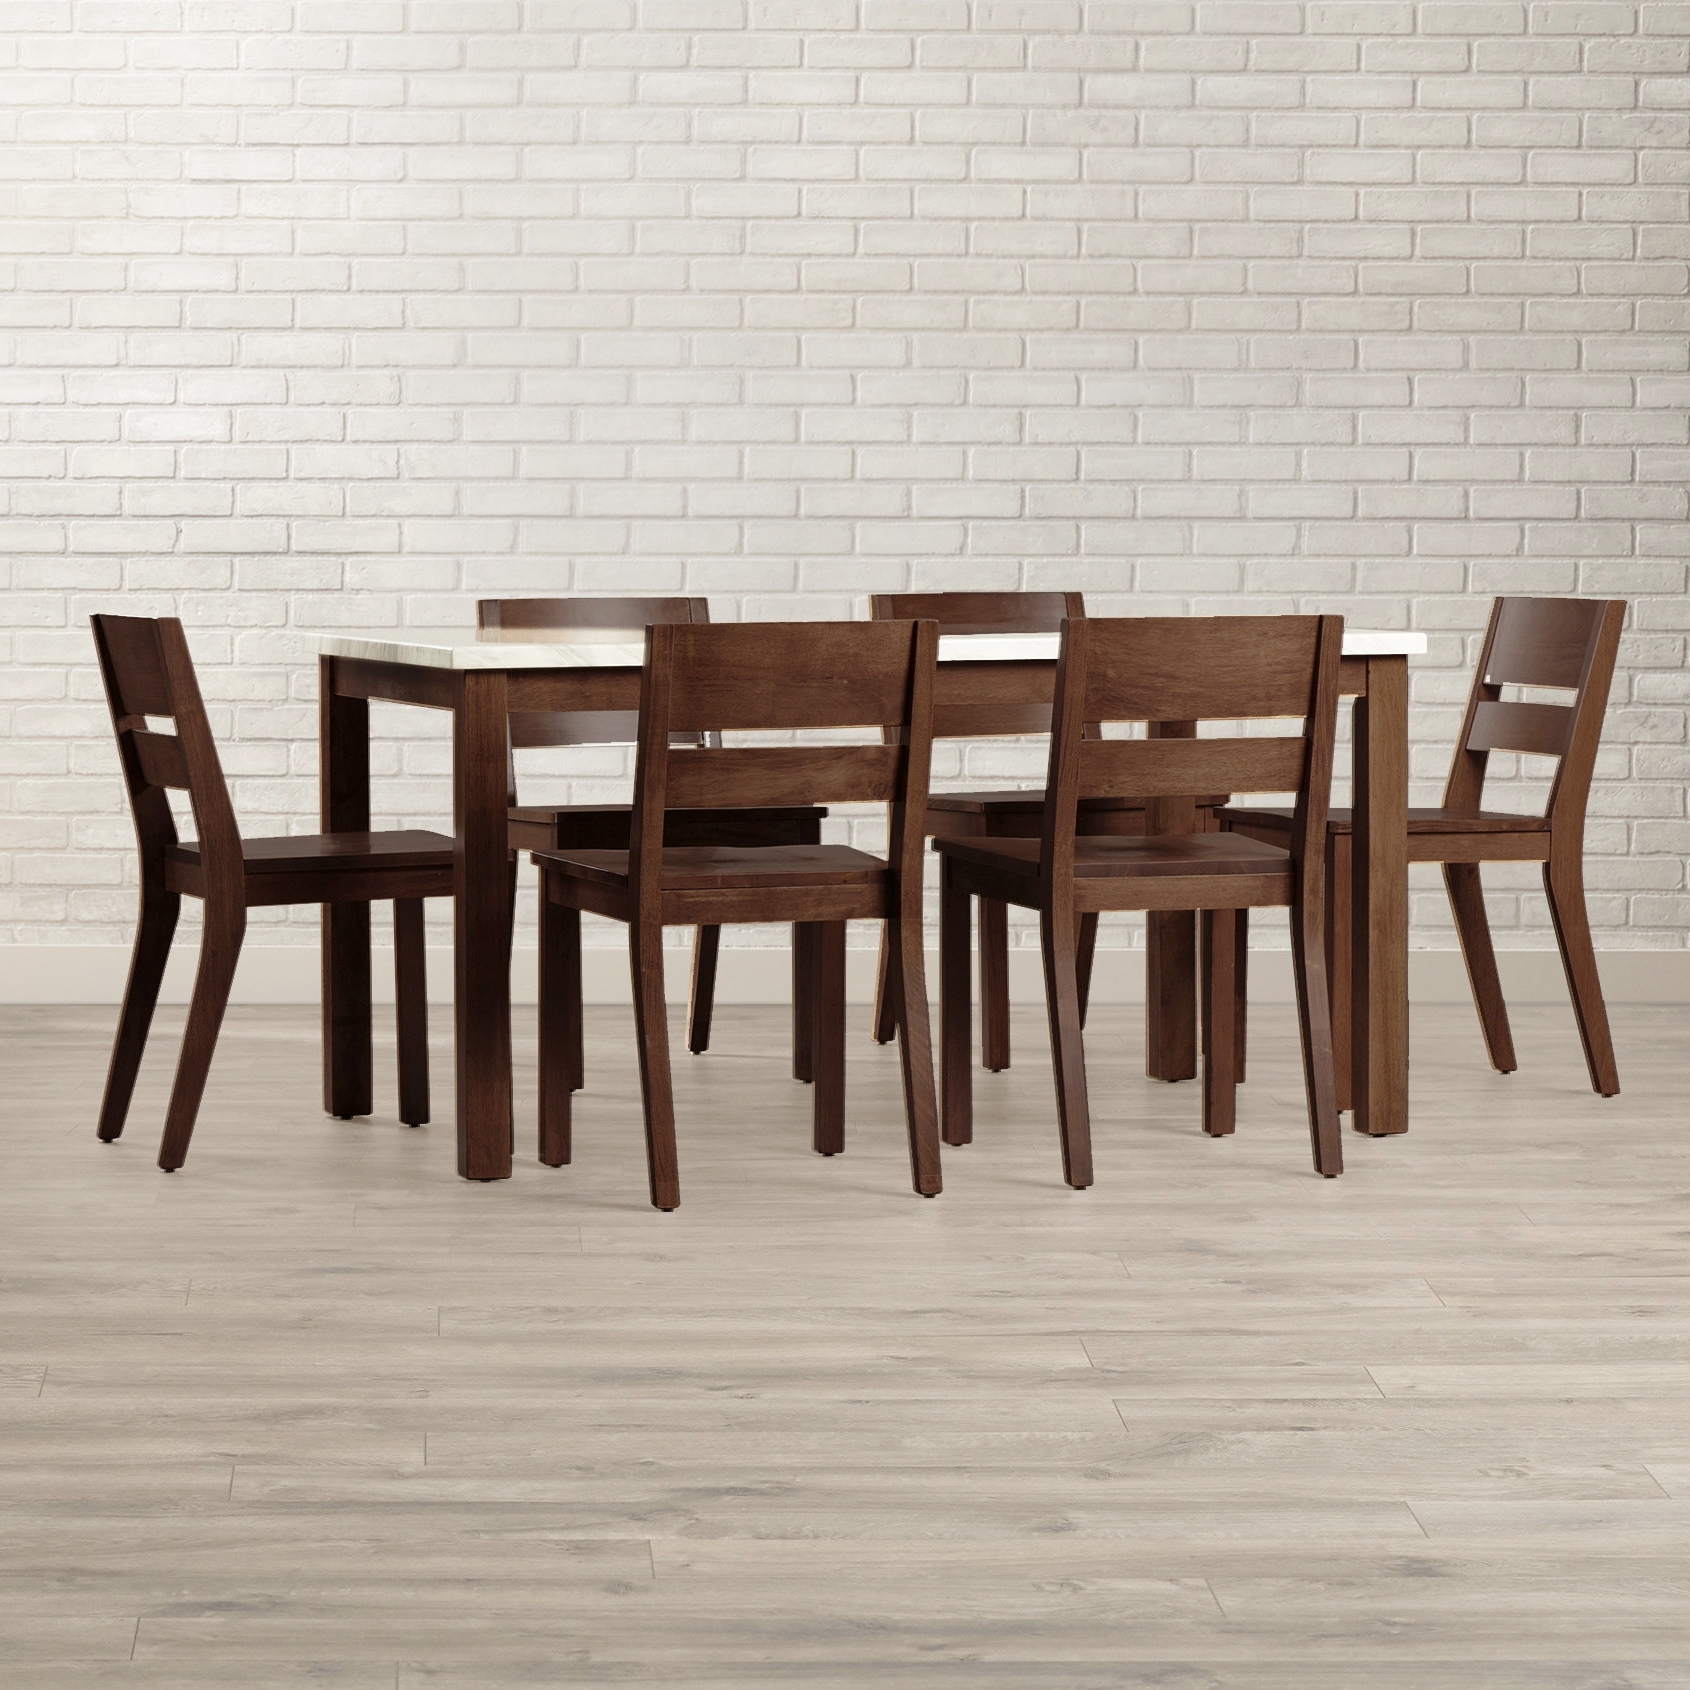 Wayfair Pertaining To Candice Ii 7 Piece Extension Rectangle Dining Sets (View 22 of 25)